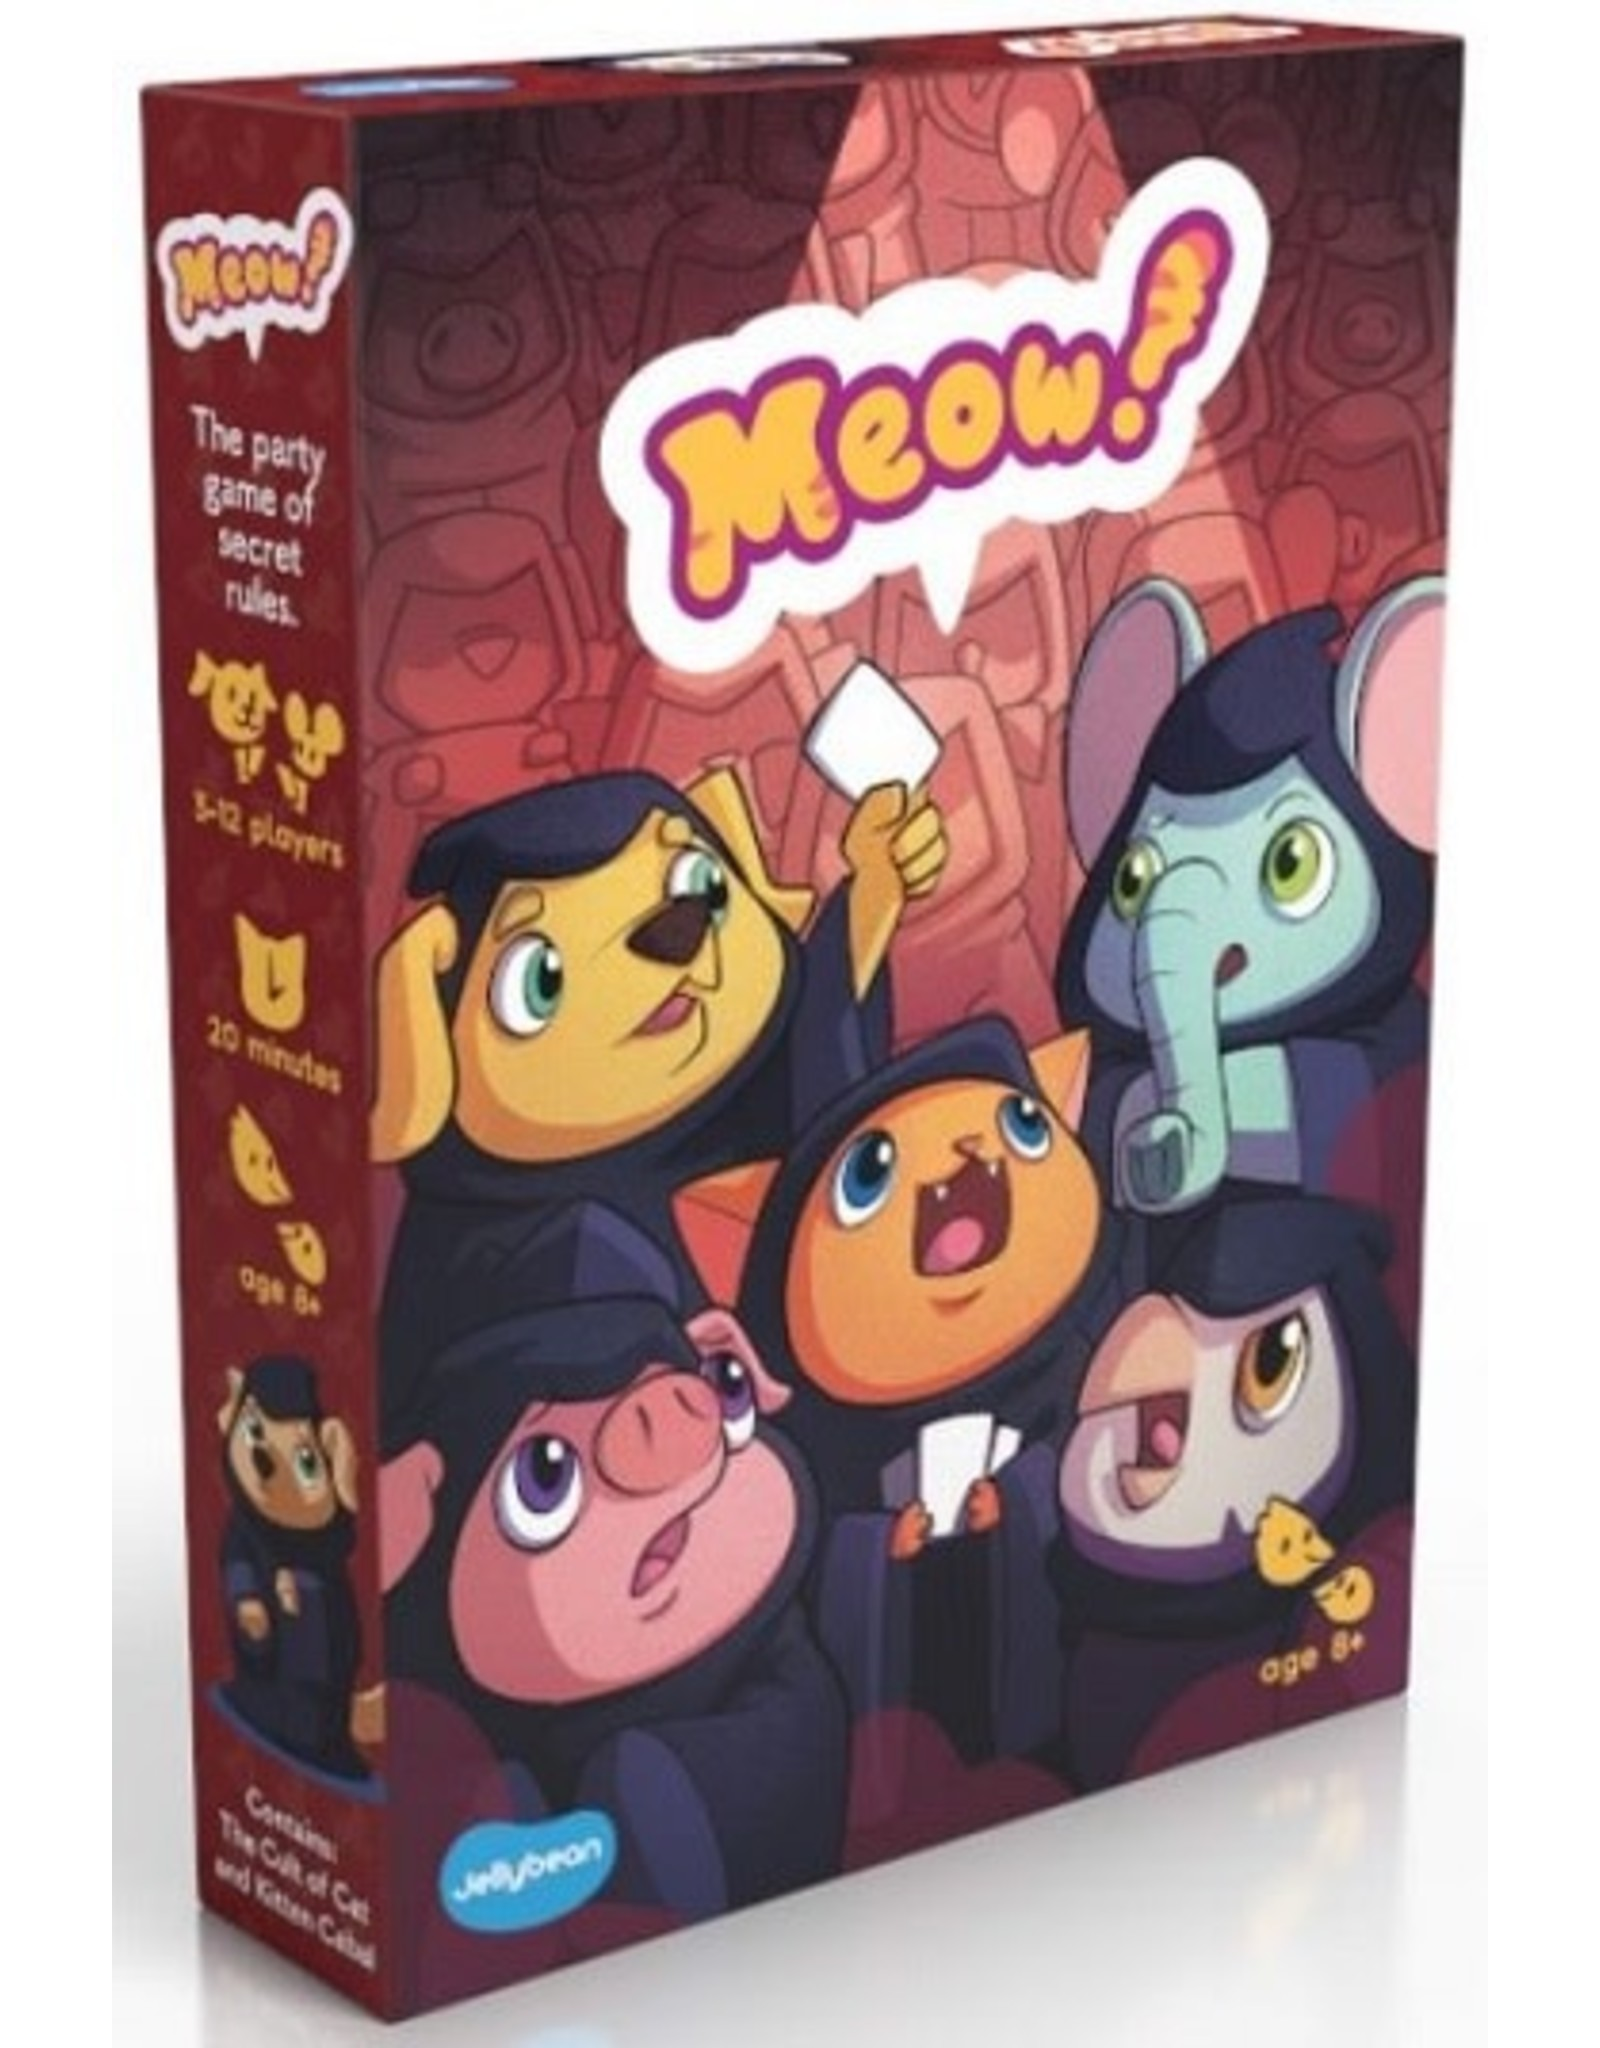 Meow! Card Game